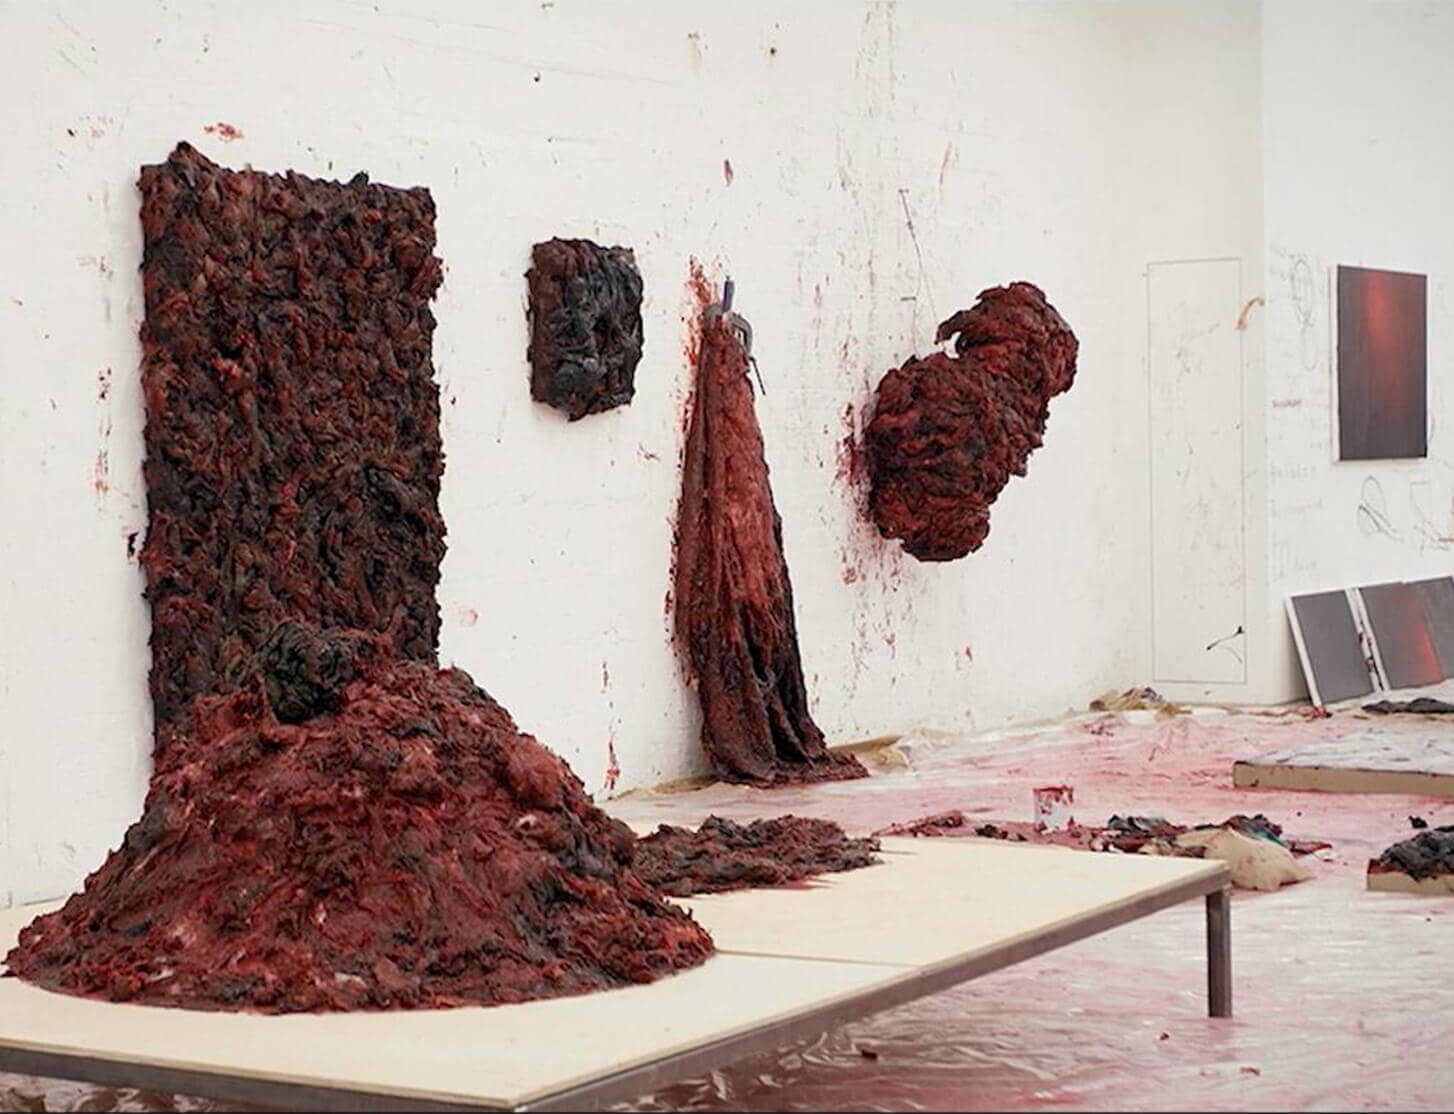 Anish Kapoor on myth, meaning and melancholia - Wallpaper*